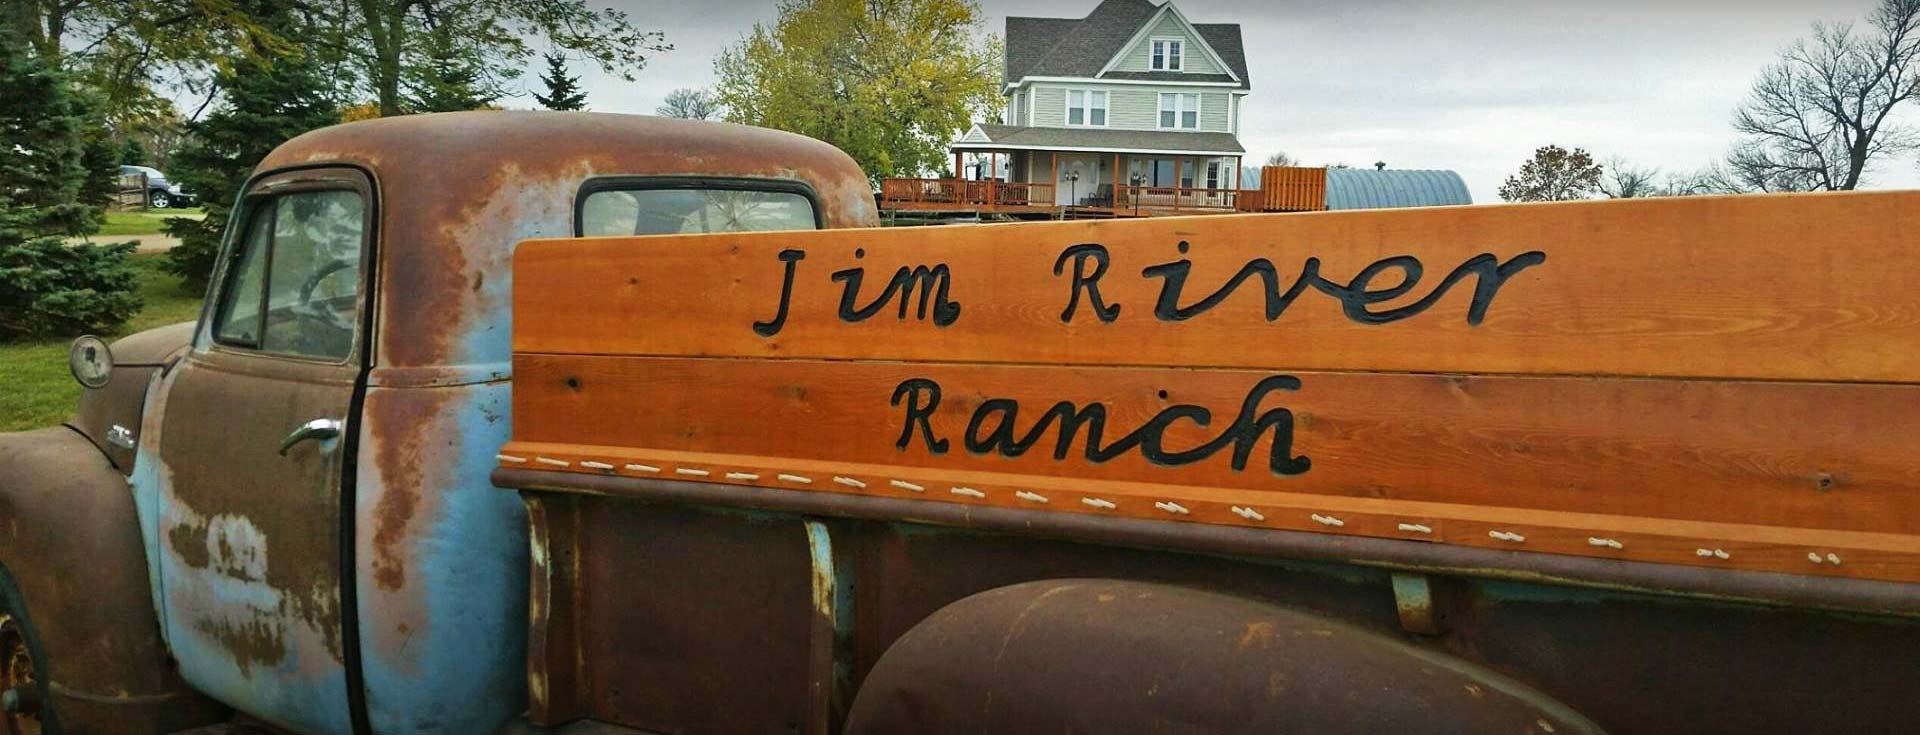 About Jim River Ranch